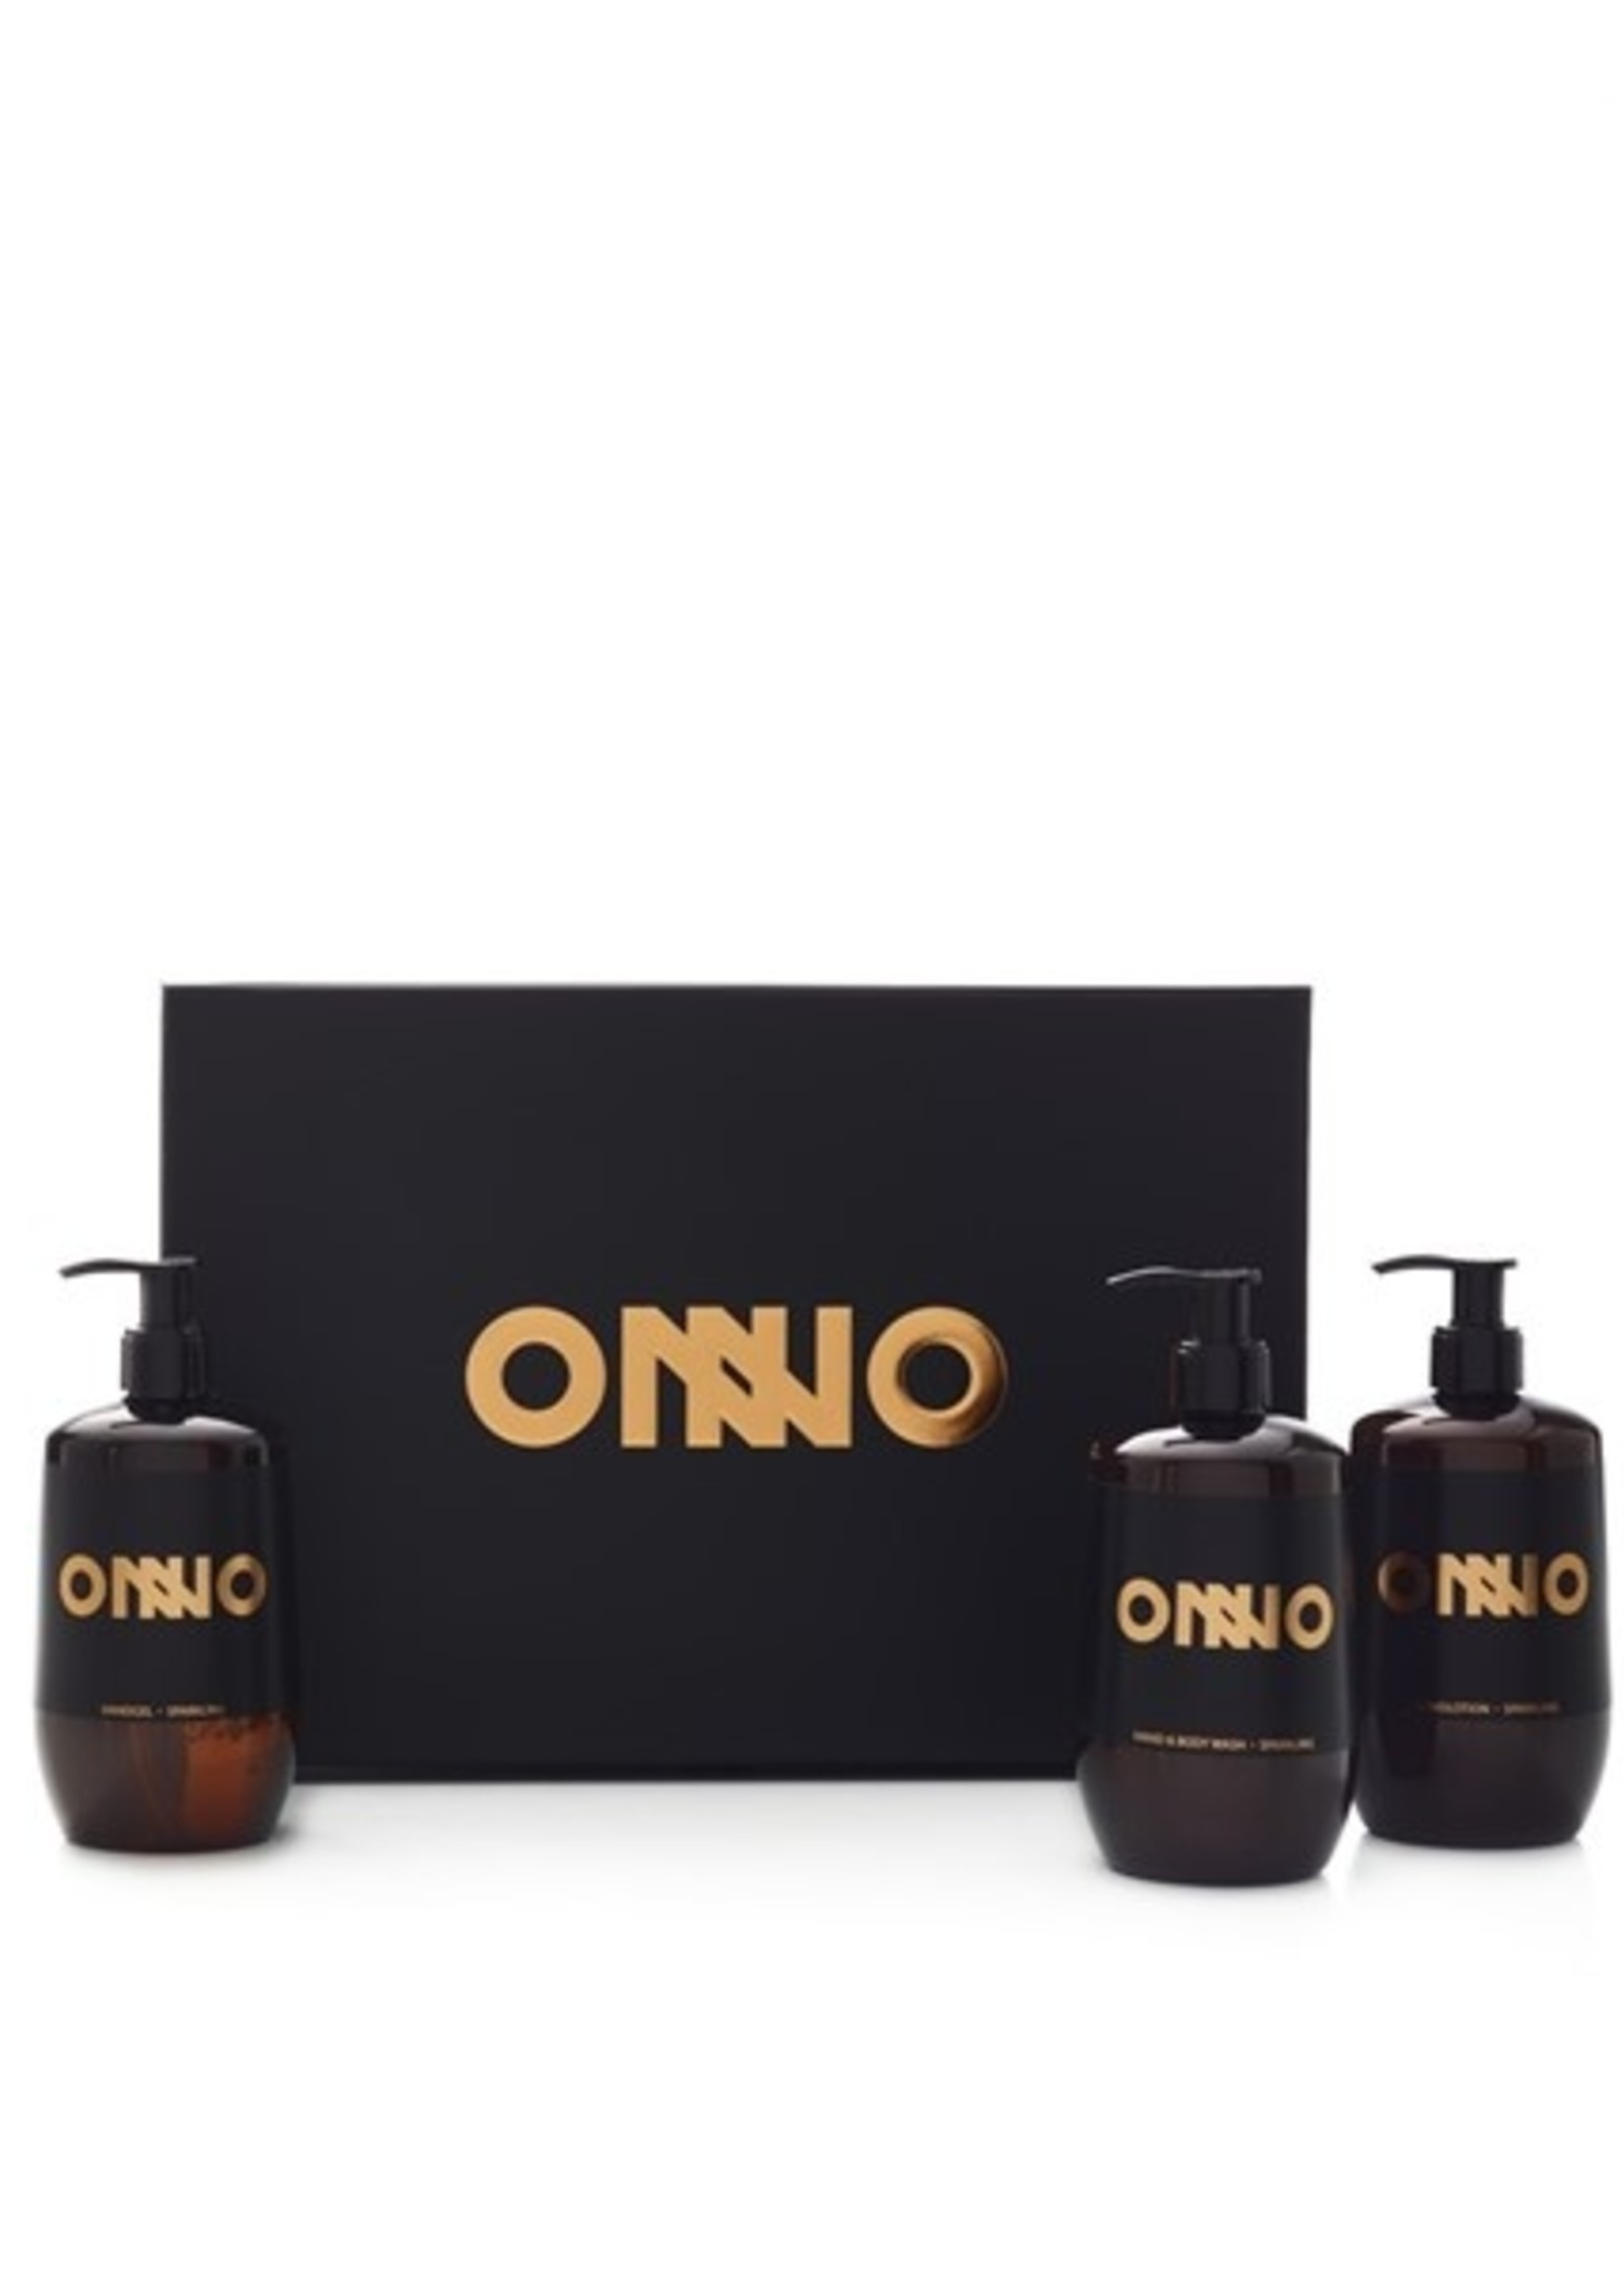 ONNO COLLECTION Onno hand & Body GIFTBOX Sprankling